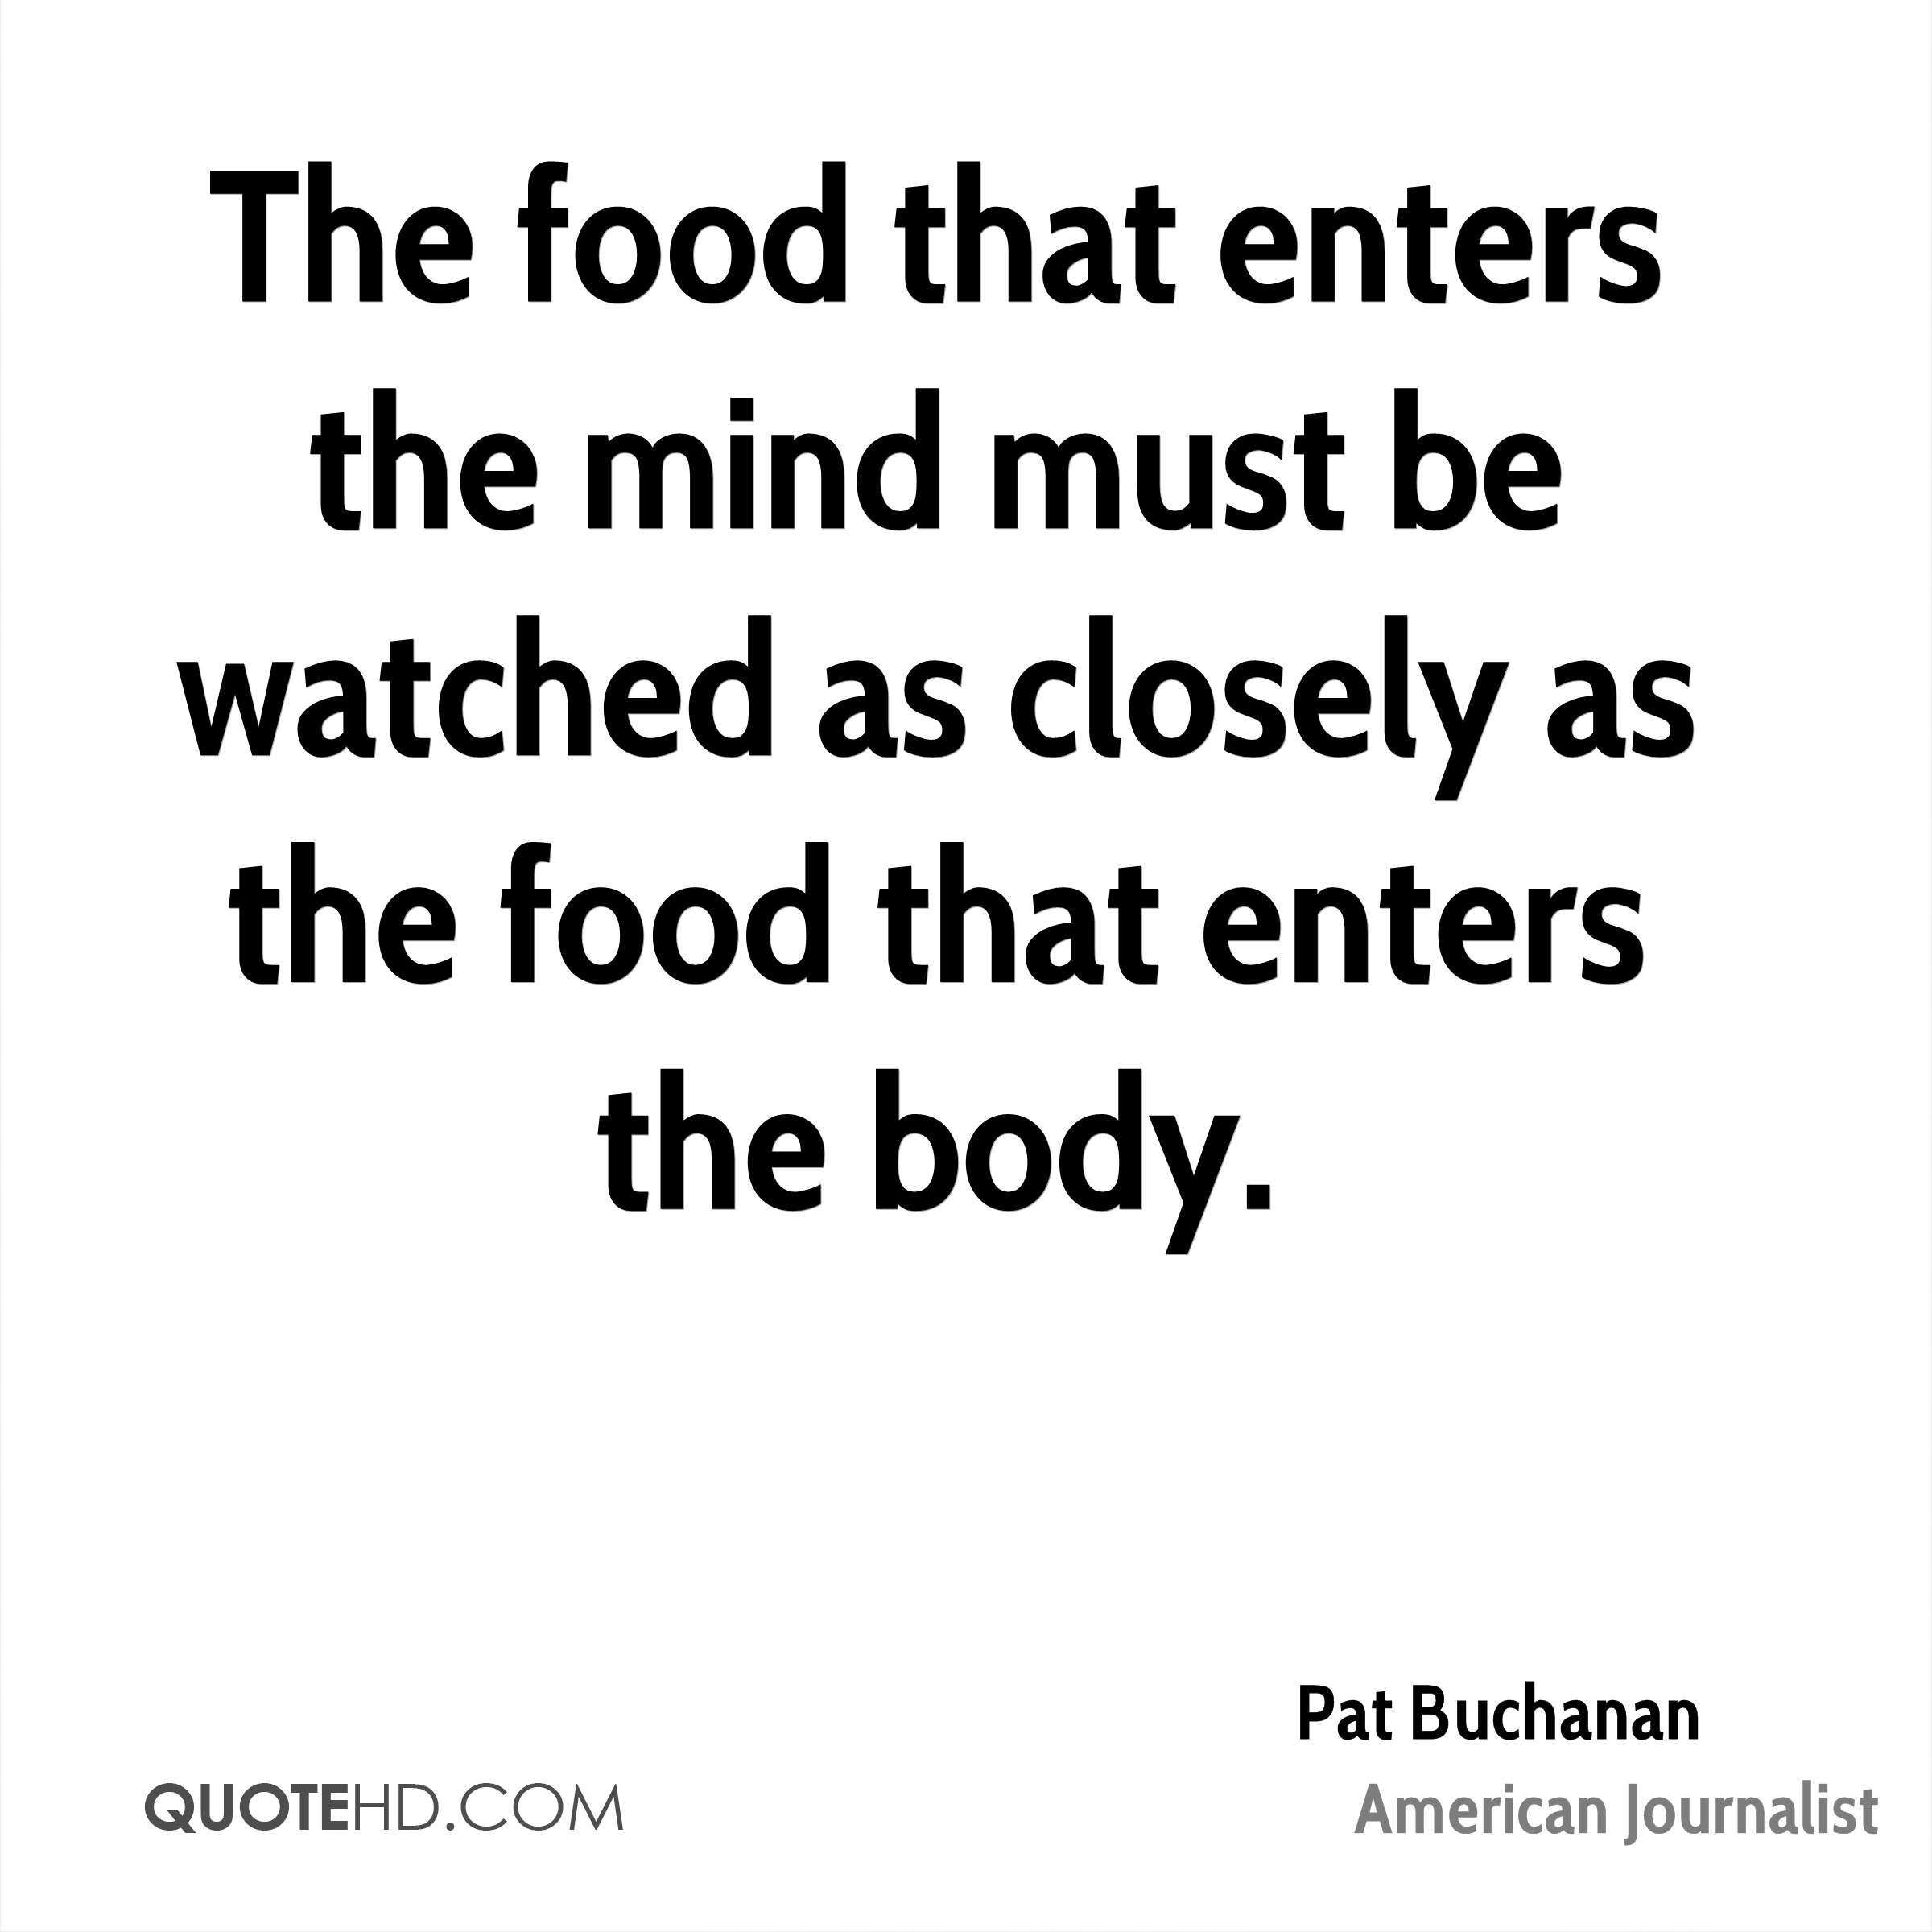 The food that enters the mind must be watched as closely as the food that enters the body.